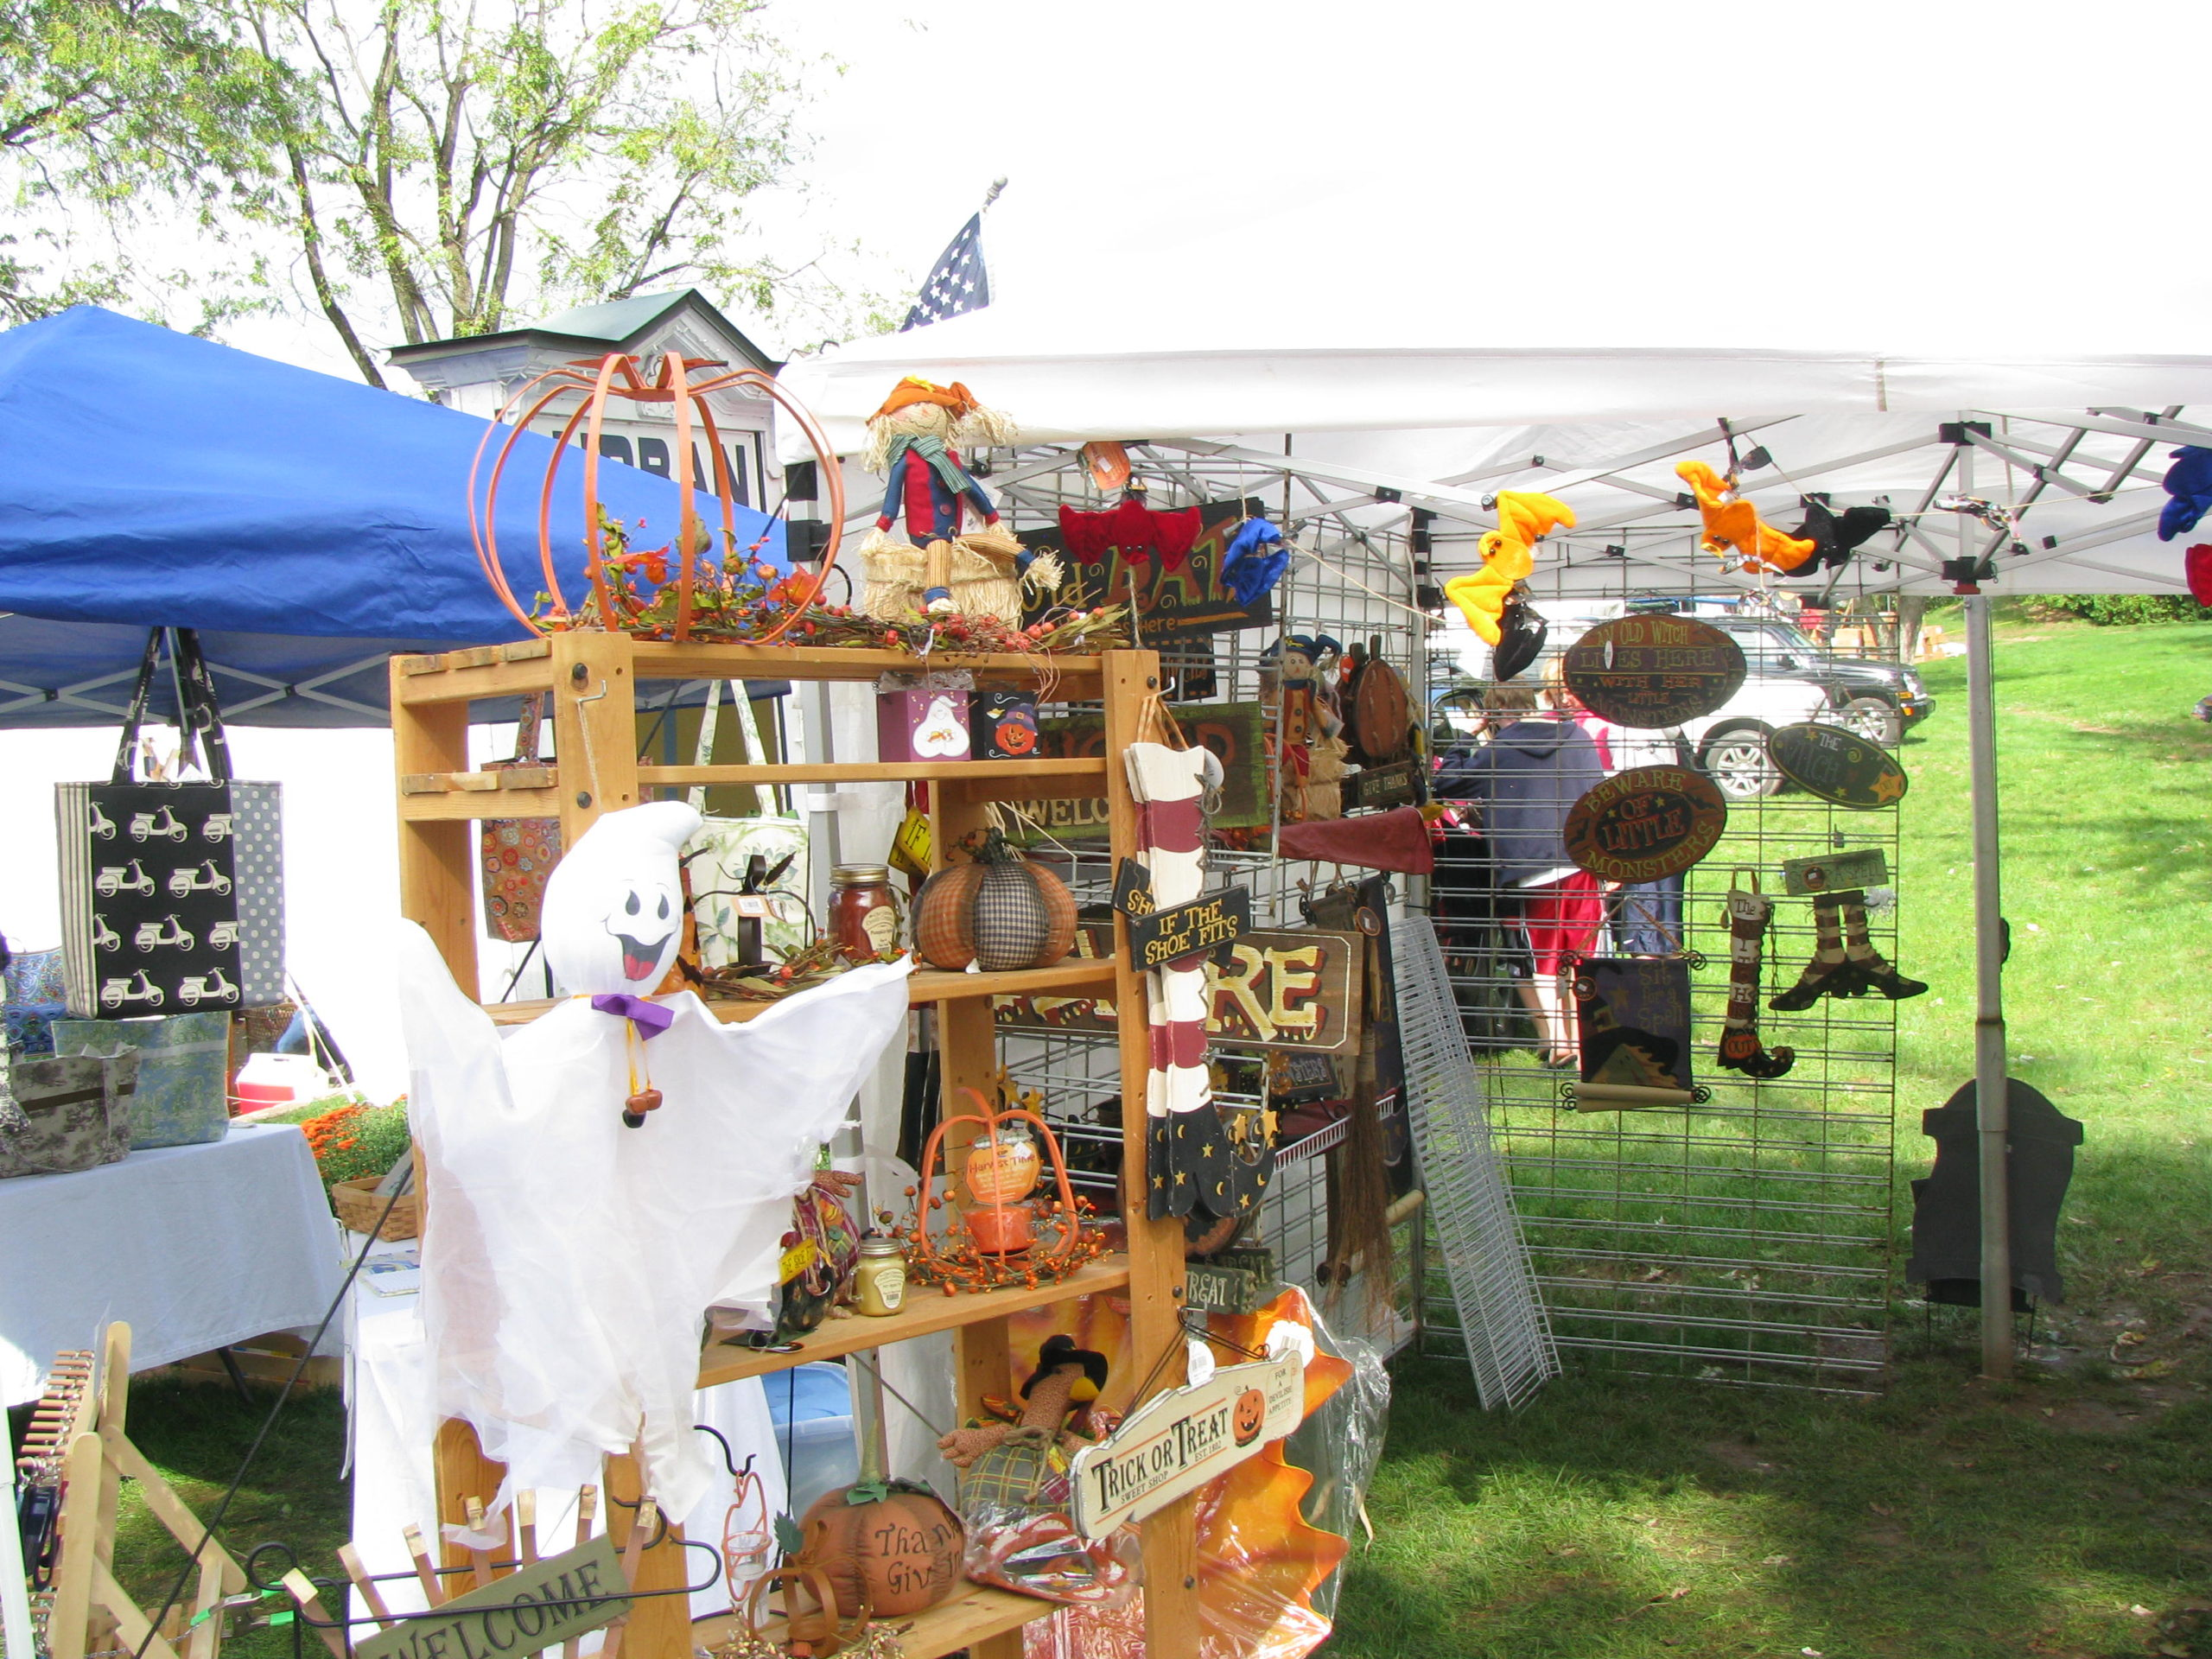 Business booms during Skippack Days